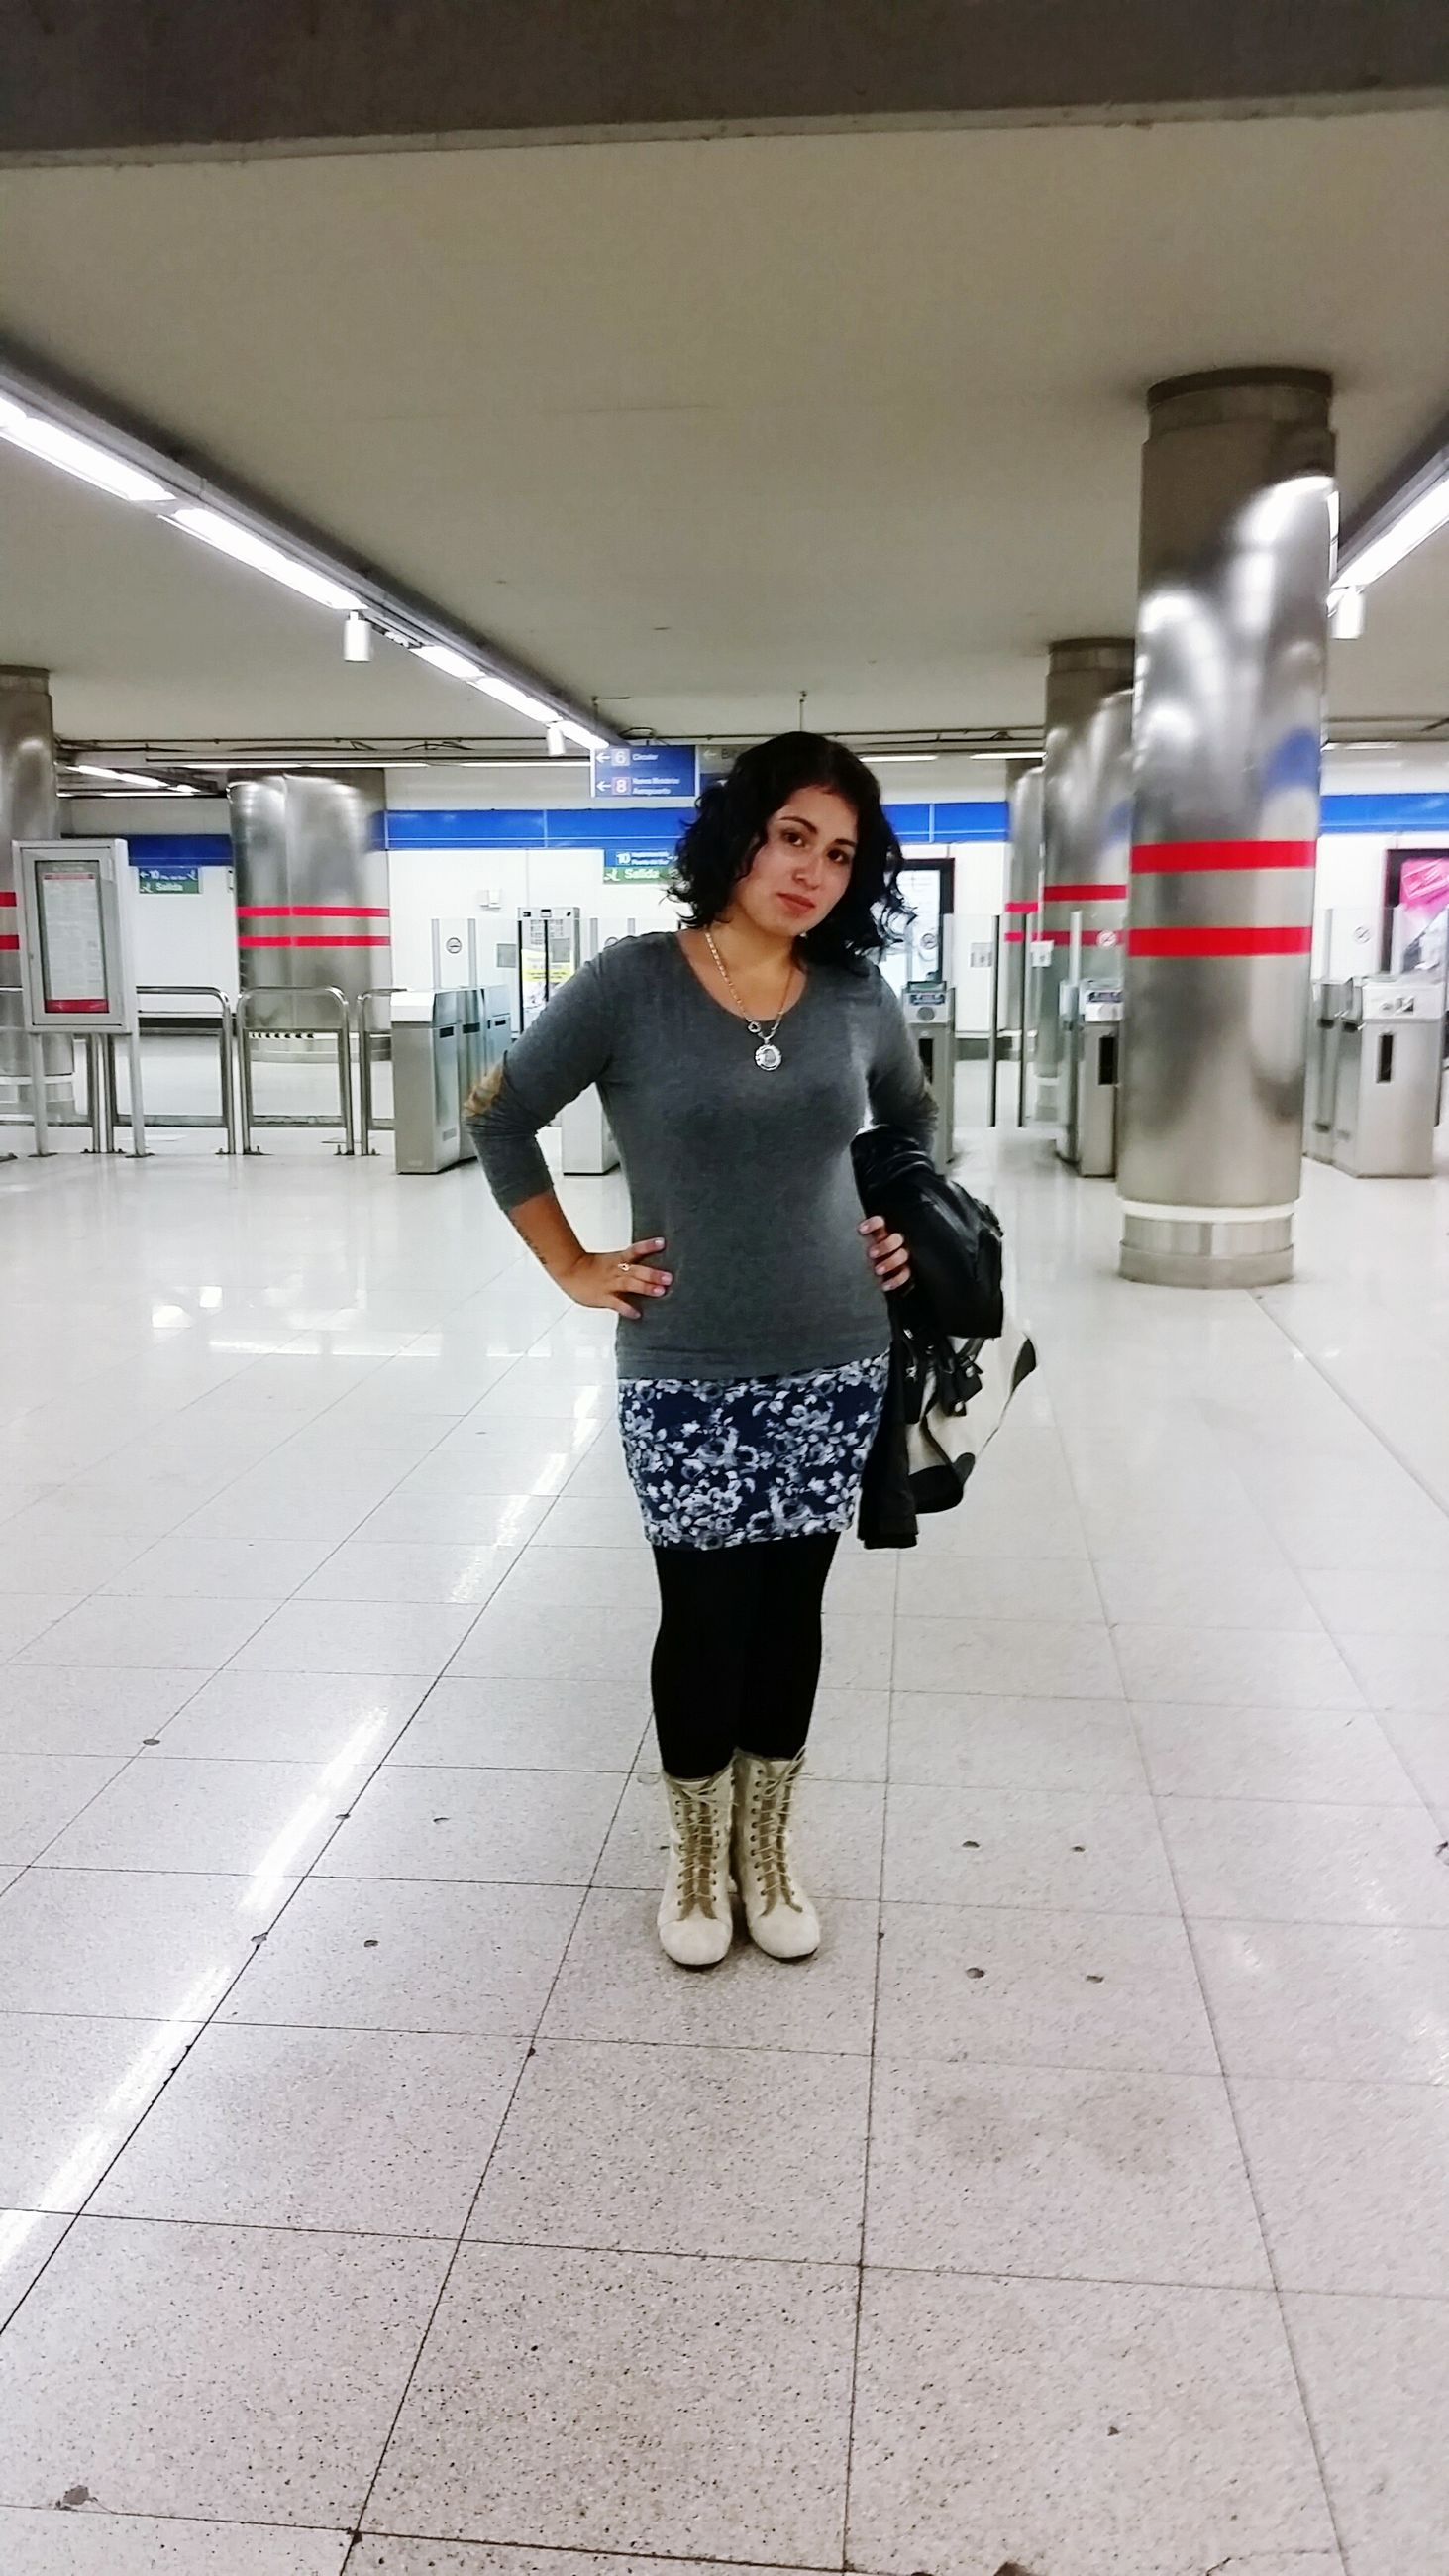 lifestyles, indoors, casual clothing, young adult, full length, portrait, person, leisure activity, looking at camera, front view, standing, young women, smiling, transportation, illuminated, tiled floor, travel